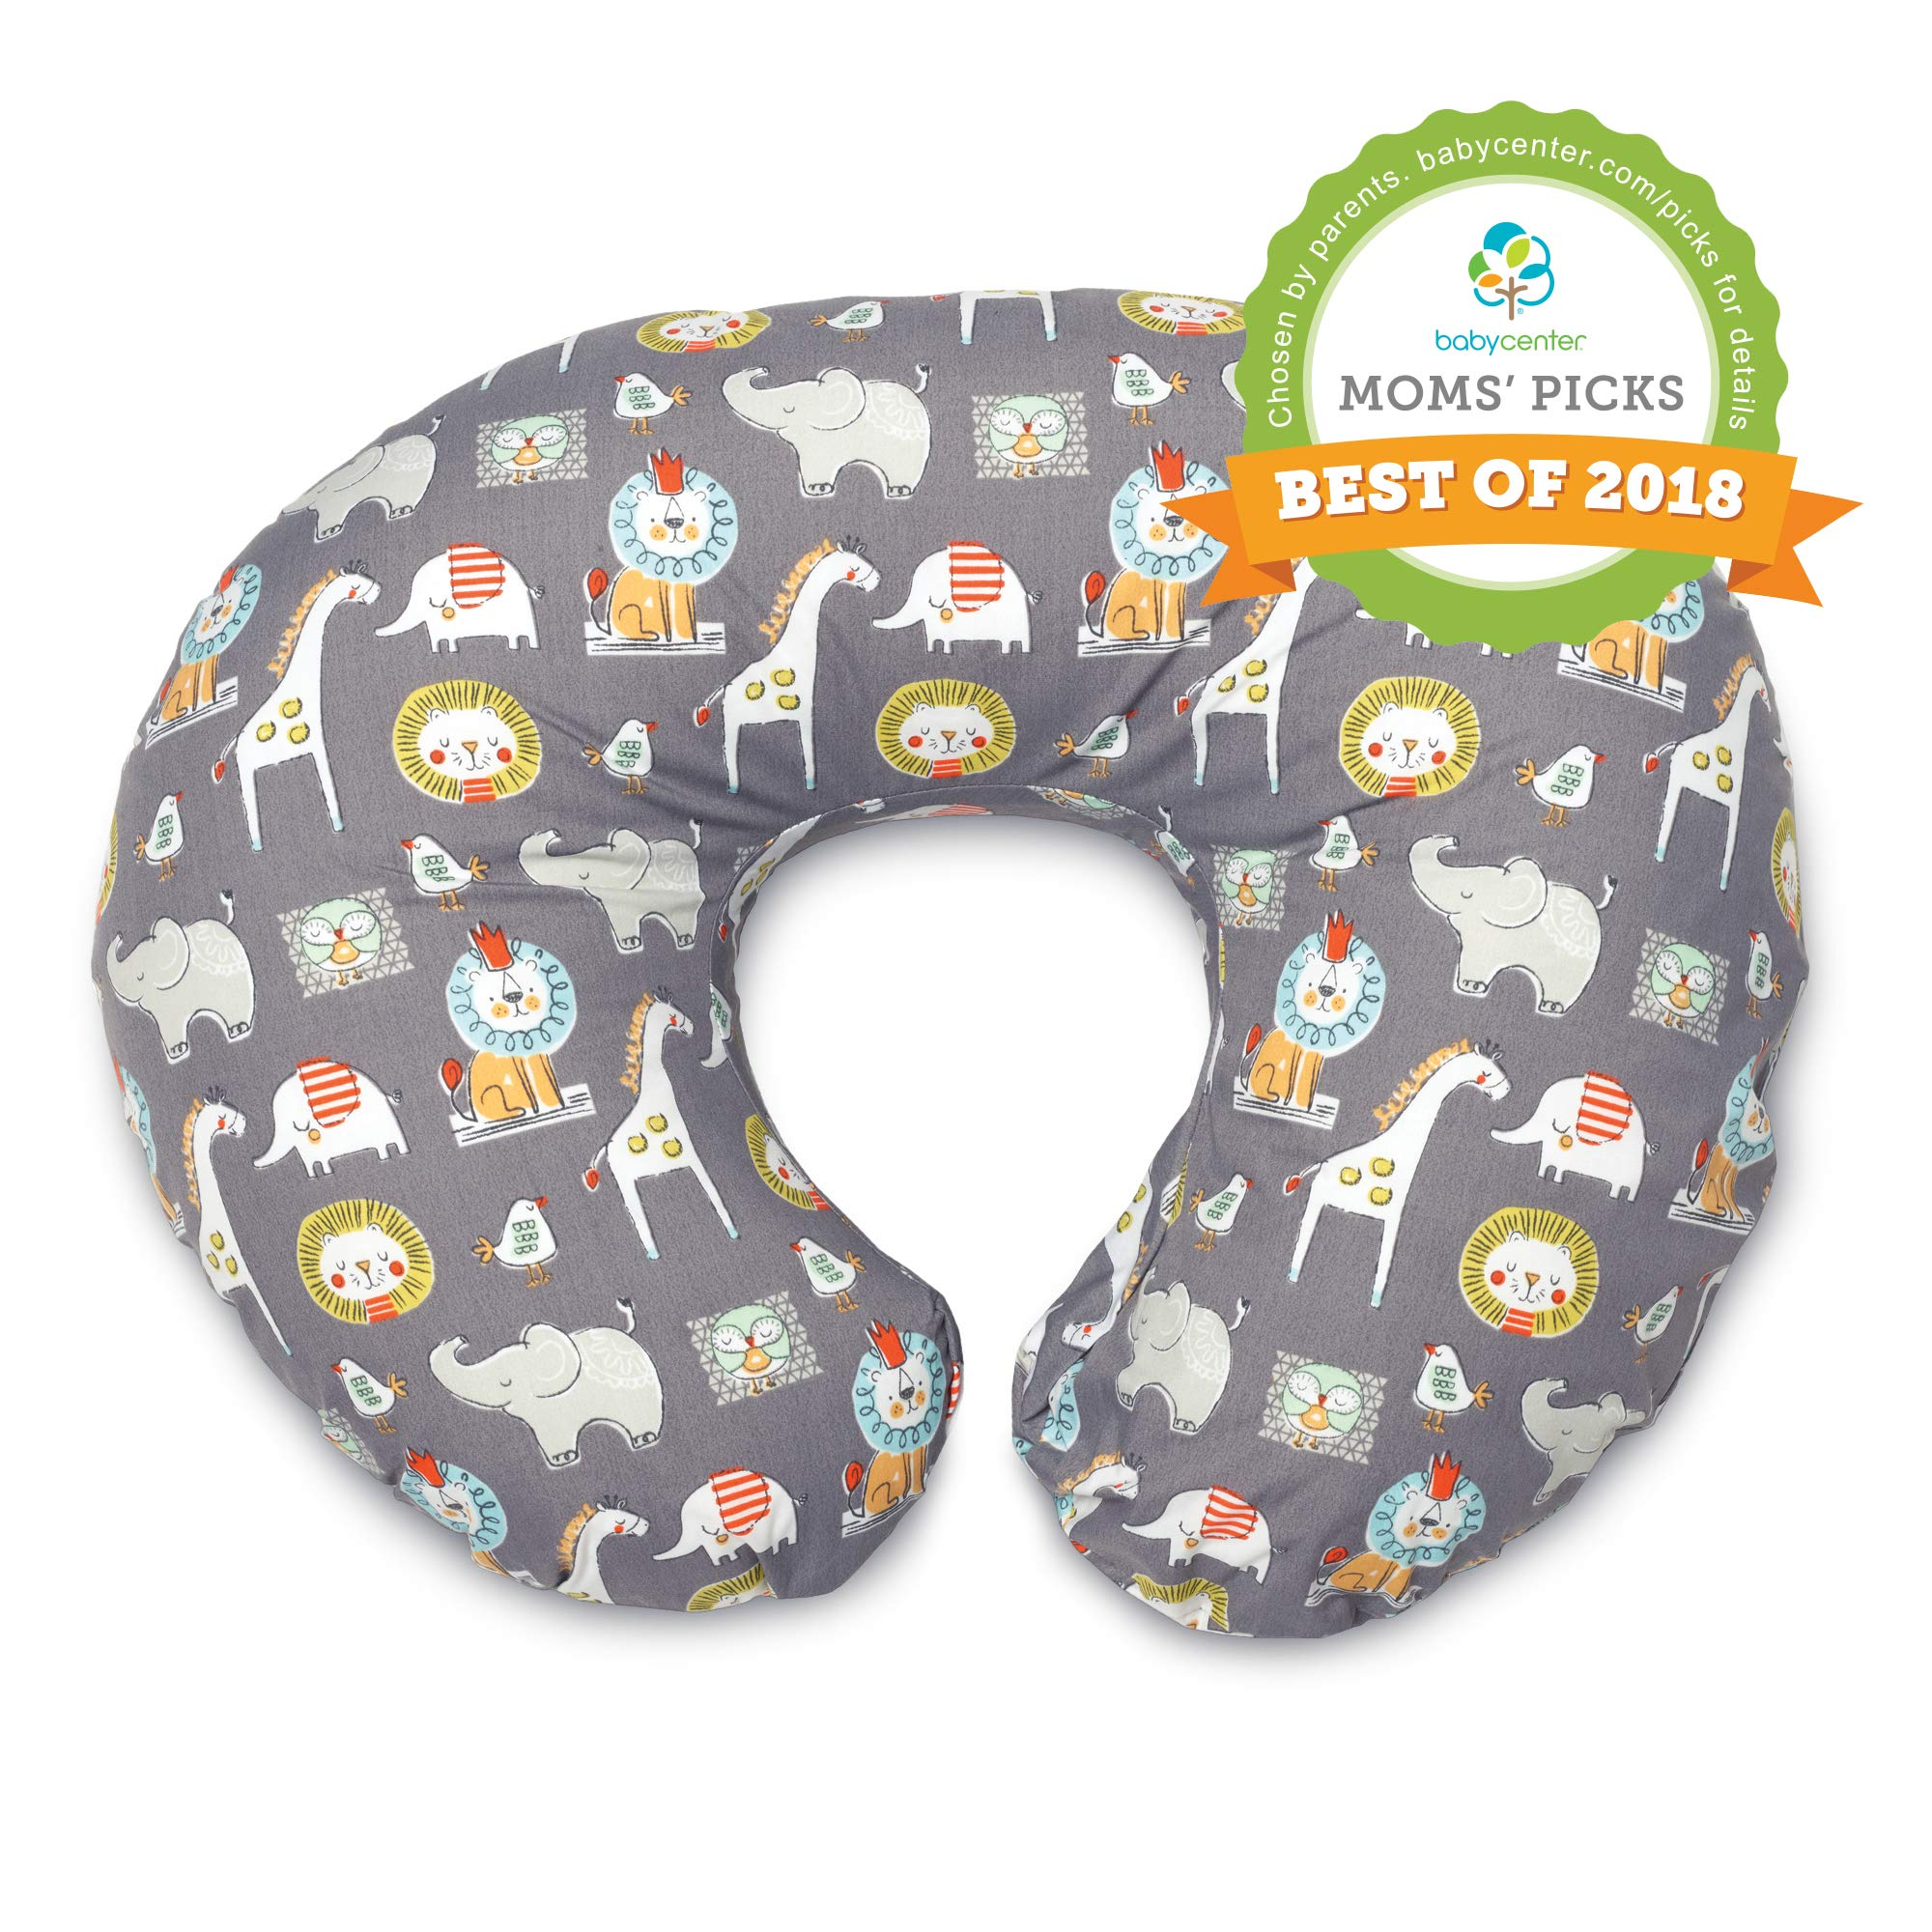 Boppy Original Nursing Pillow and Positioner, Sketch Slate Gray, Cotton Blend Fabric with allover fashion by Boppy